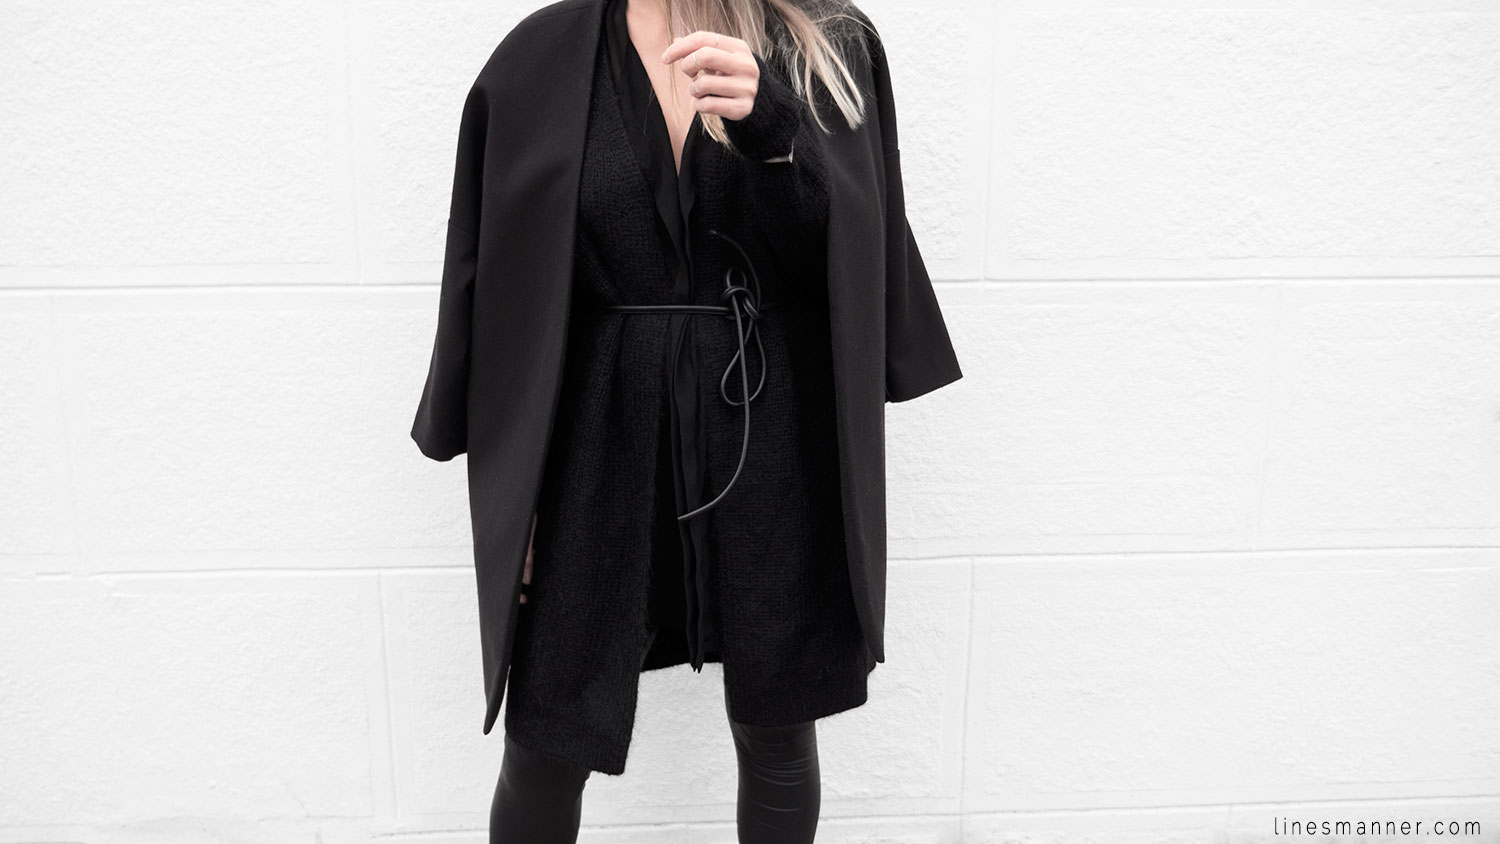 Lines-Manner-Timeless-Comfort-Essentials-Monochrome-Trend-Minimal-Textures-Oversized-Warm-Fall-Leather-Details-Simplicity-Modern-Basics-Outfit-Structure-1